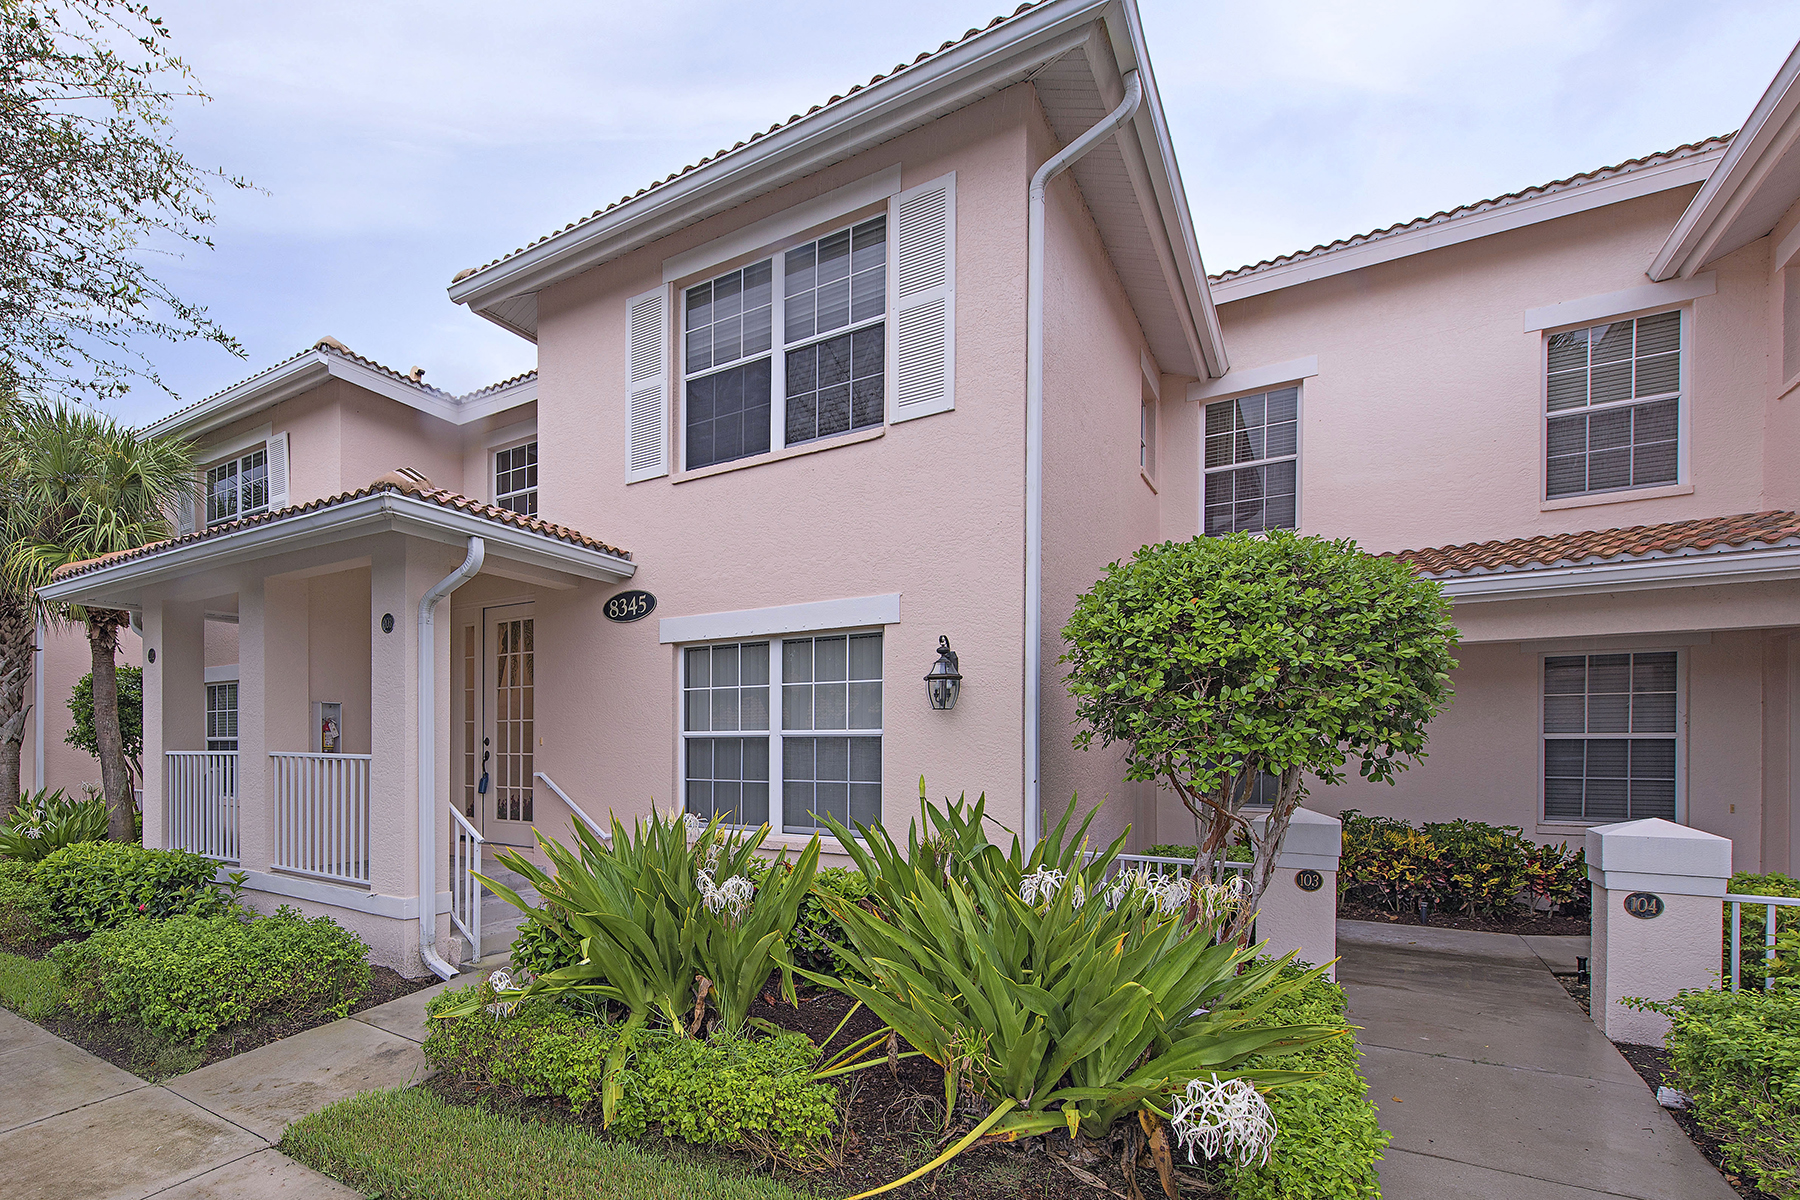 Condominium for Sale at 8345 Whisper Trace Way , 203, Naples, FL 34114 8345 Whisper Trace Way 203 Naples, Florida, 34114 United States